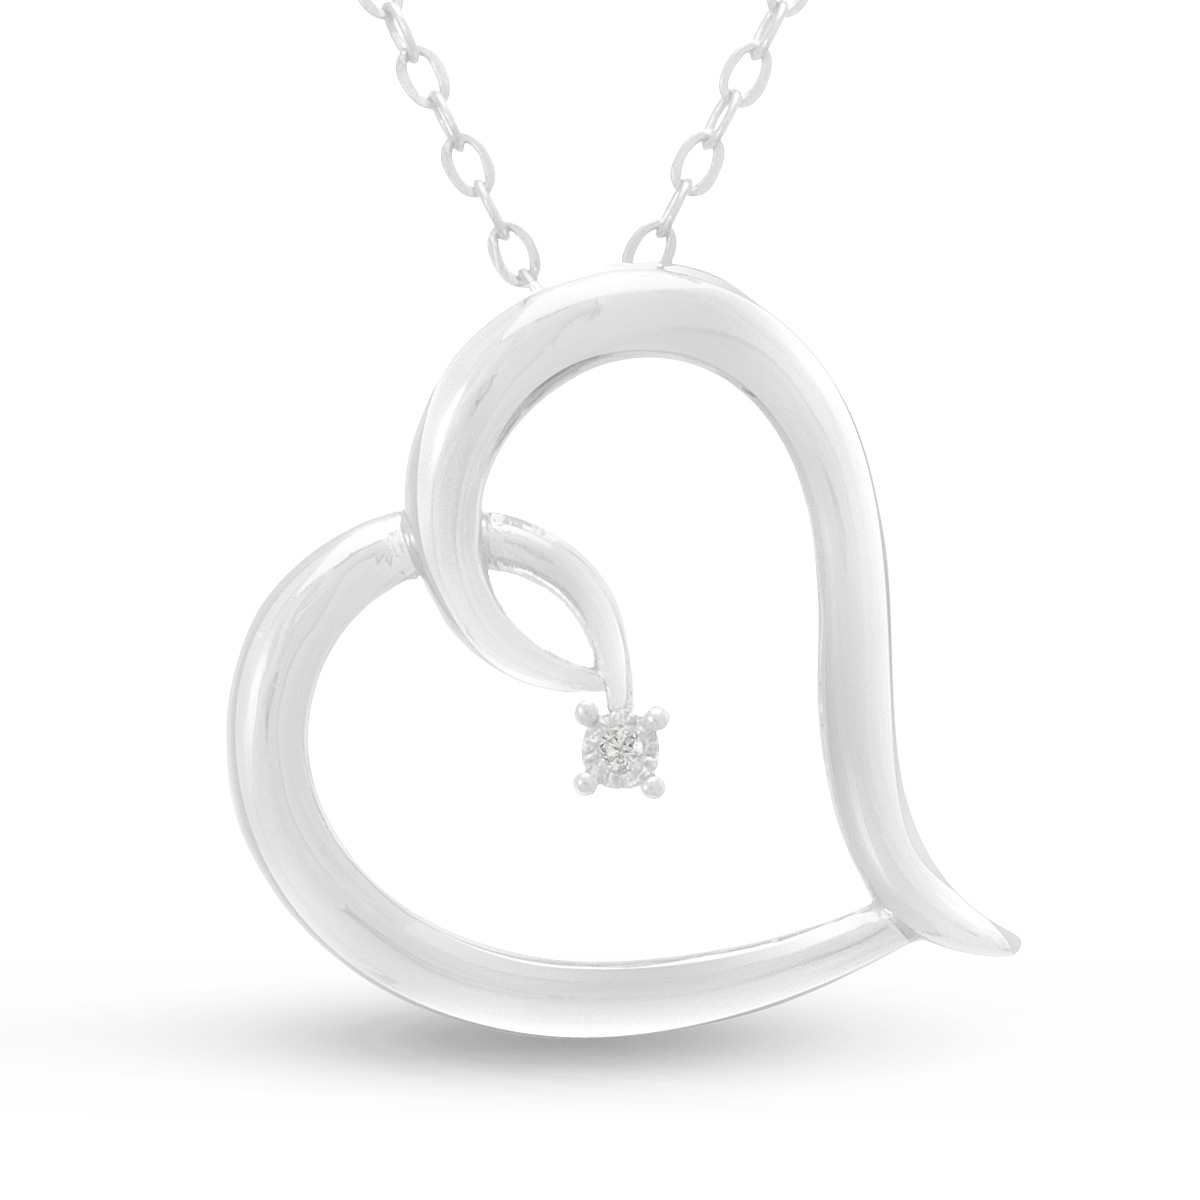 Statement Diamond Heart Necklace